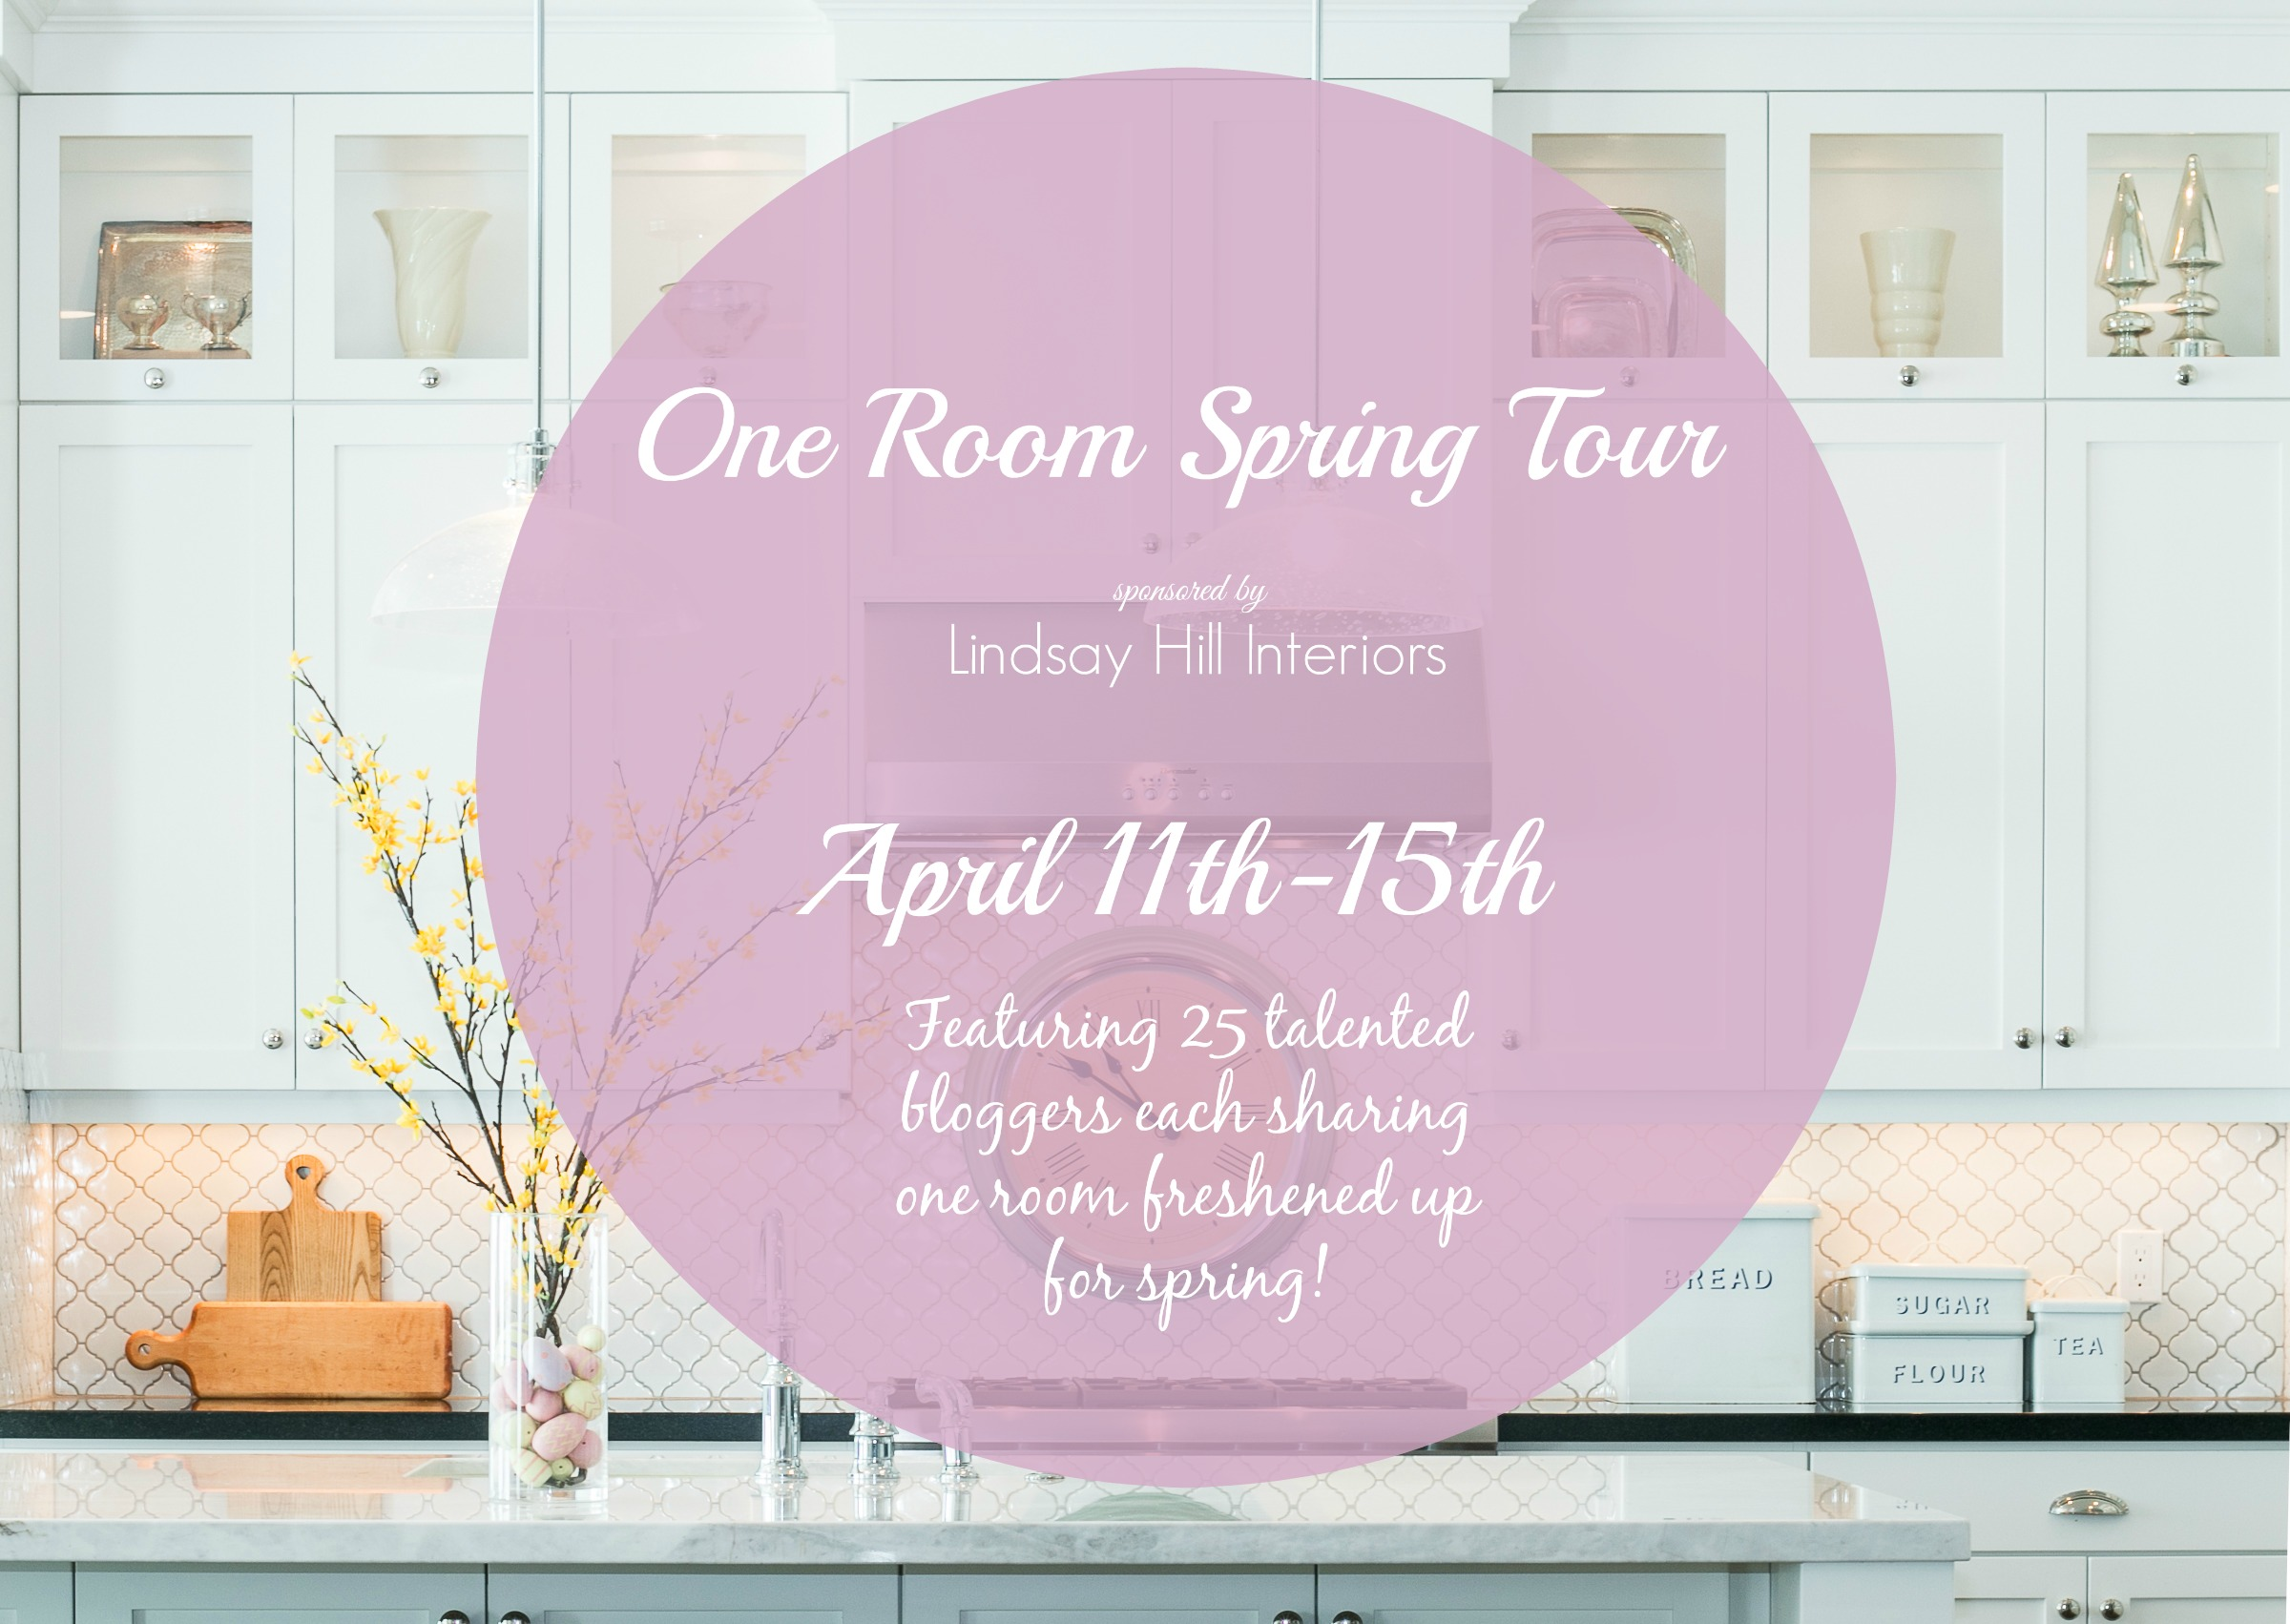 One Room Spring Tour graphic